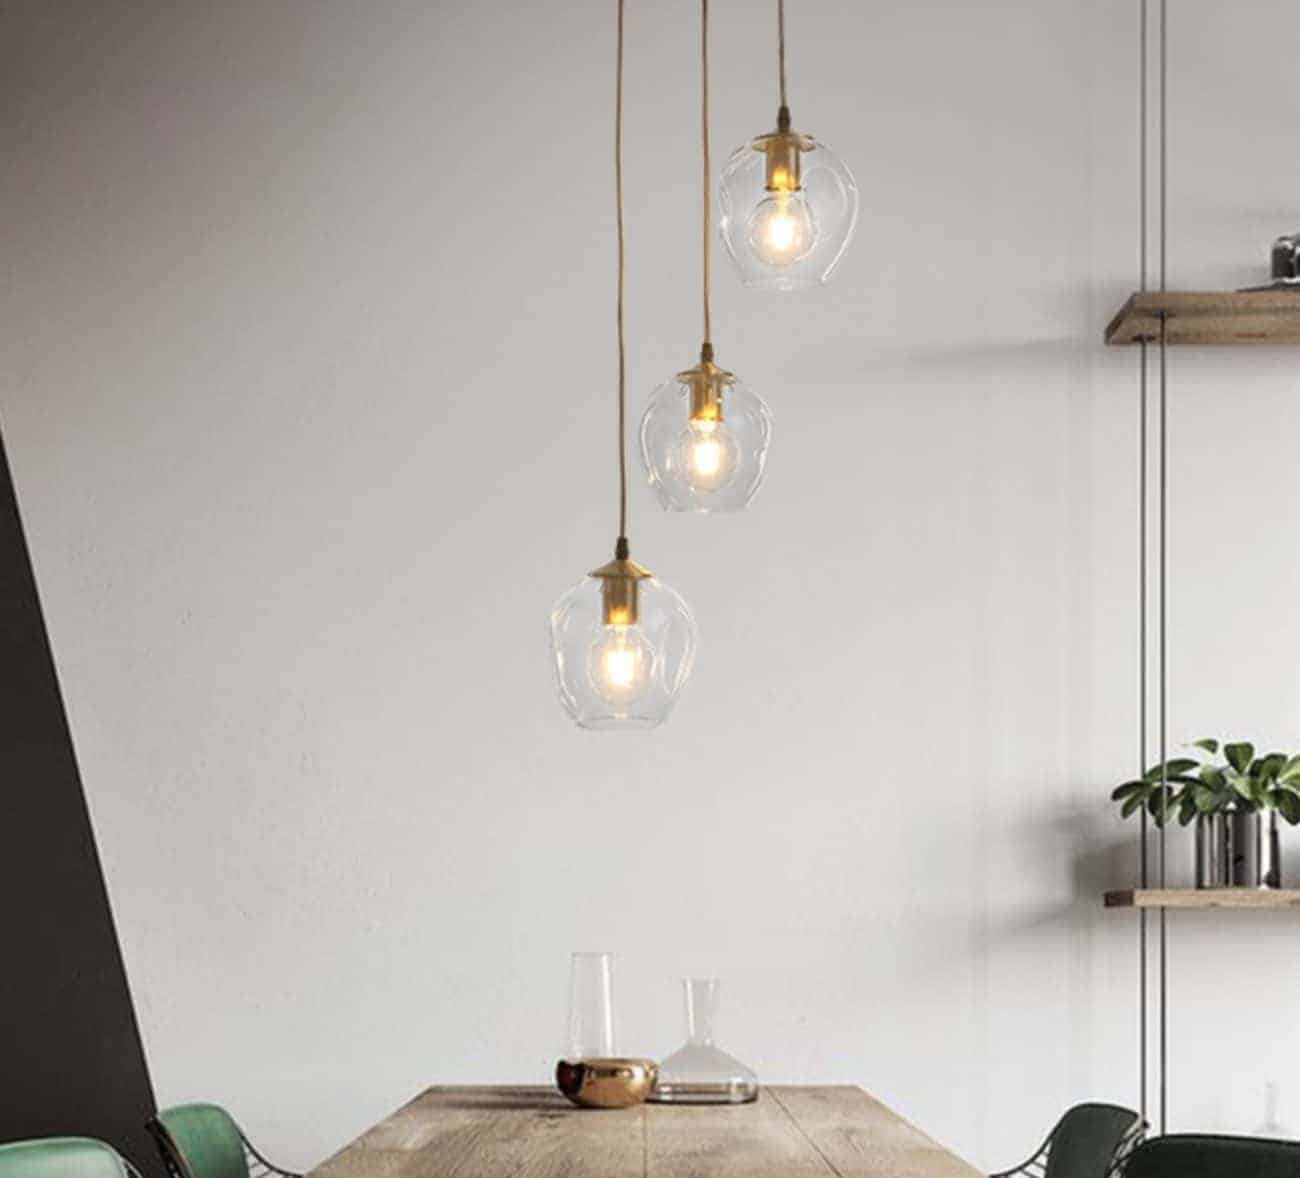 How to Choose the Best Kitchen Pendant Lighting